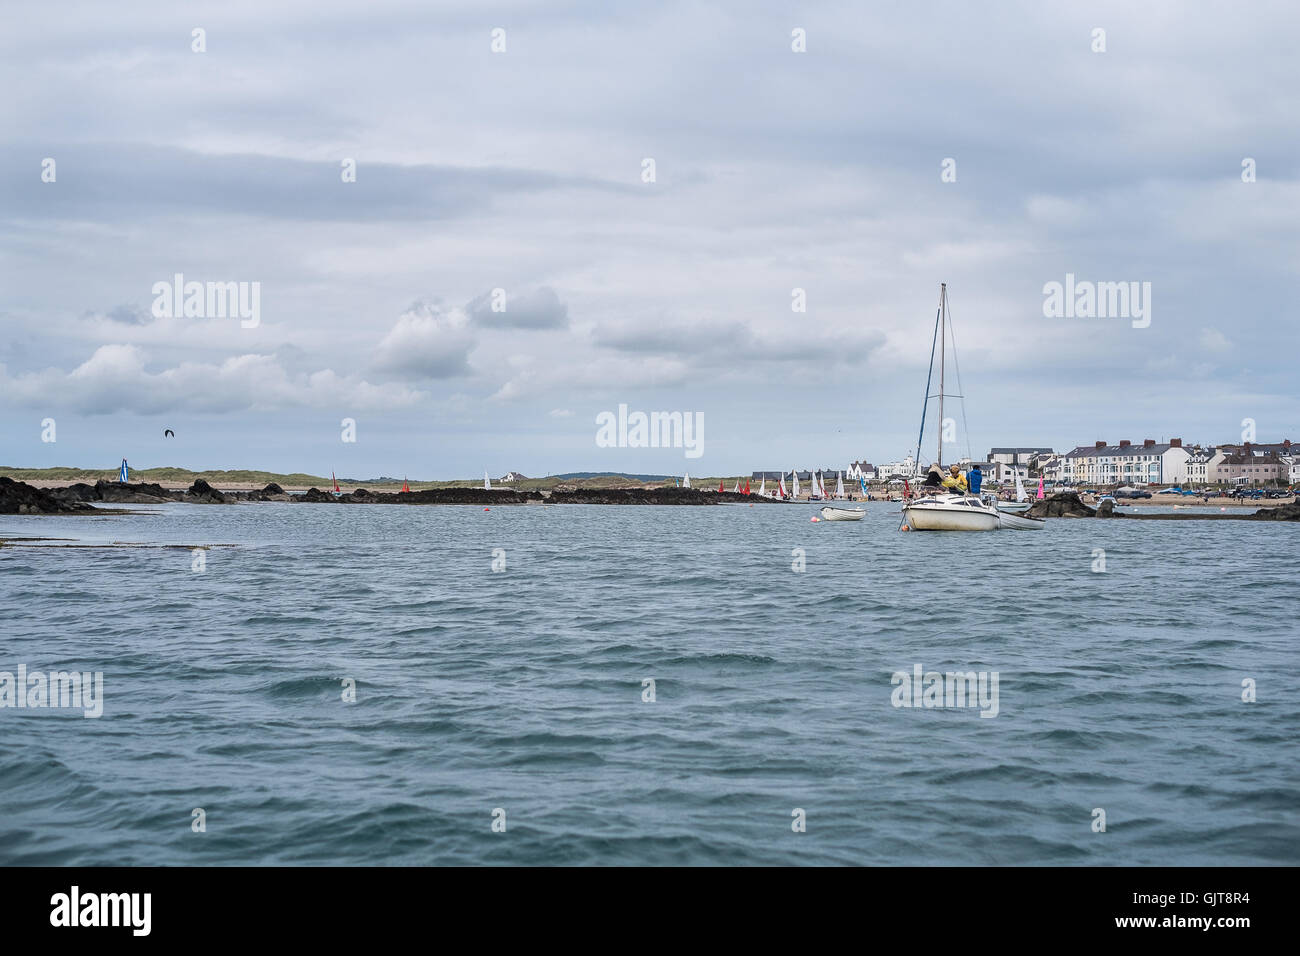 view from the sea of Boating Beach, Rhosneigr, Anglesey, Ynys Mon, North Wales, Gwynedd, UK - Stock Image